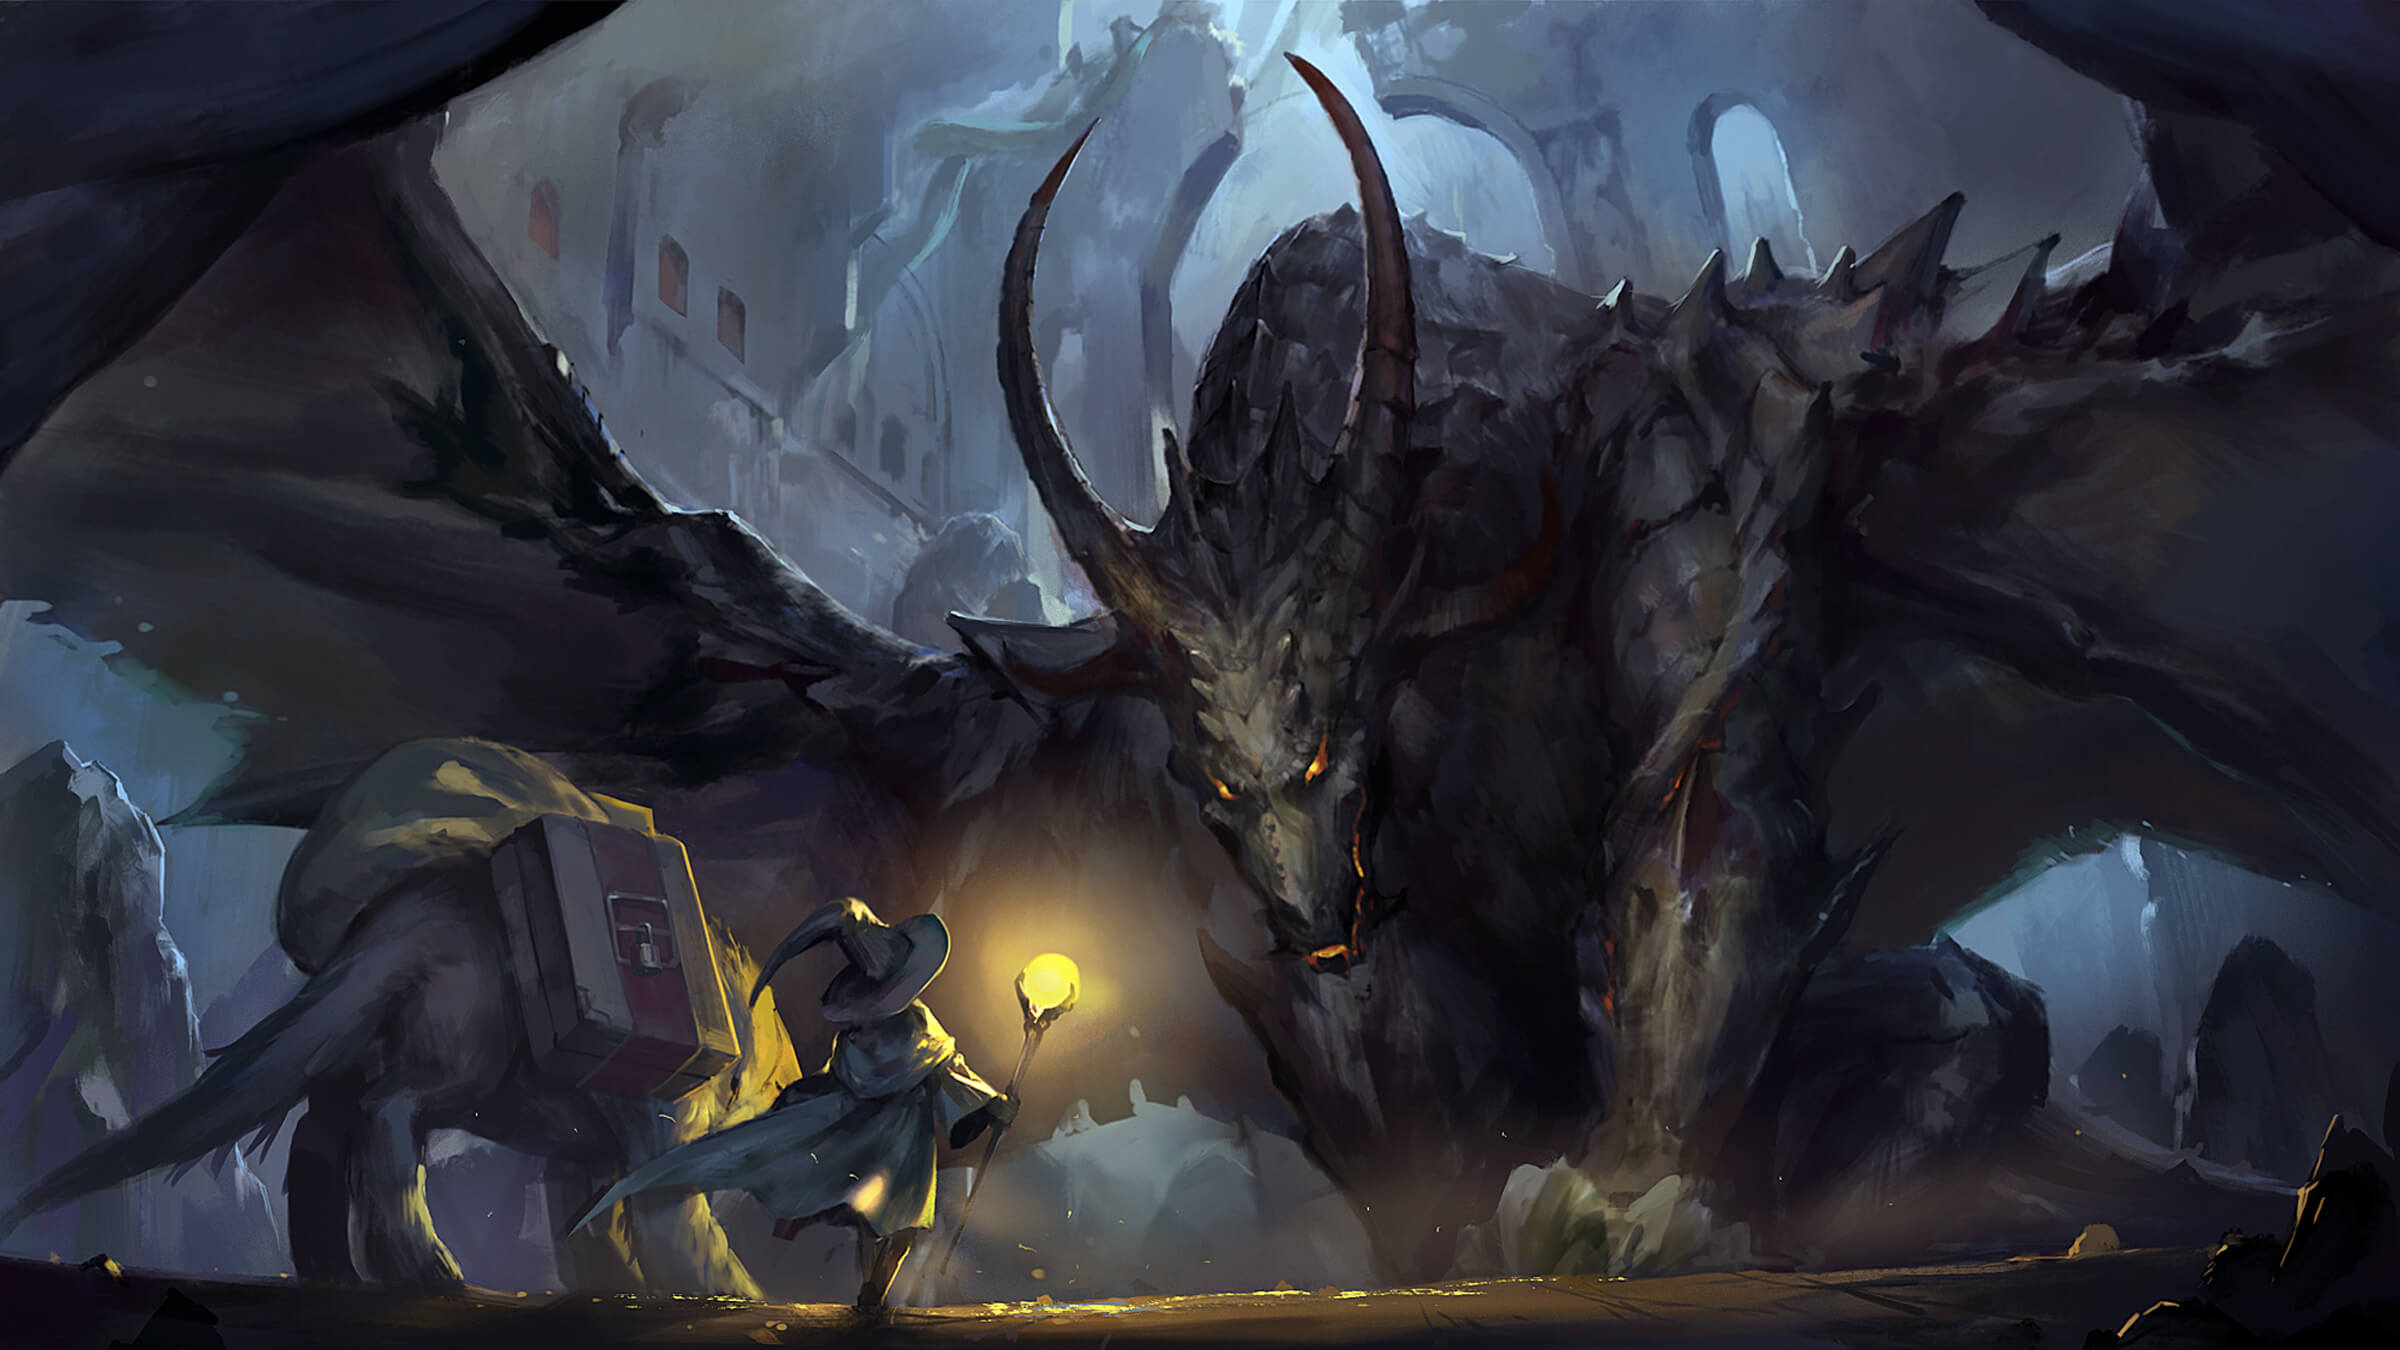 digital painting of a character in a witch hat and a dog-like creature facing an enormous, threatening dragon